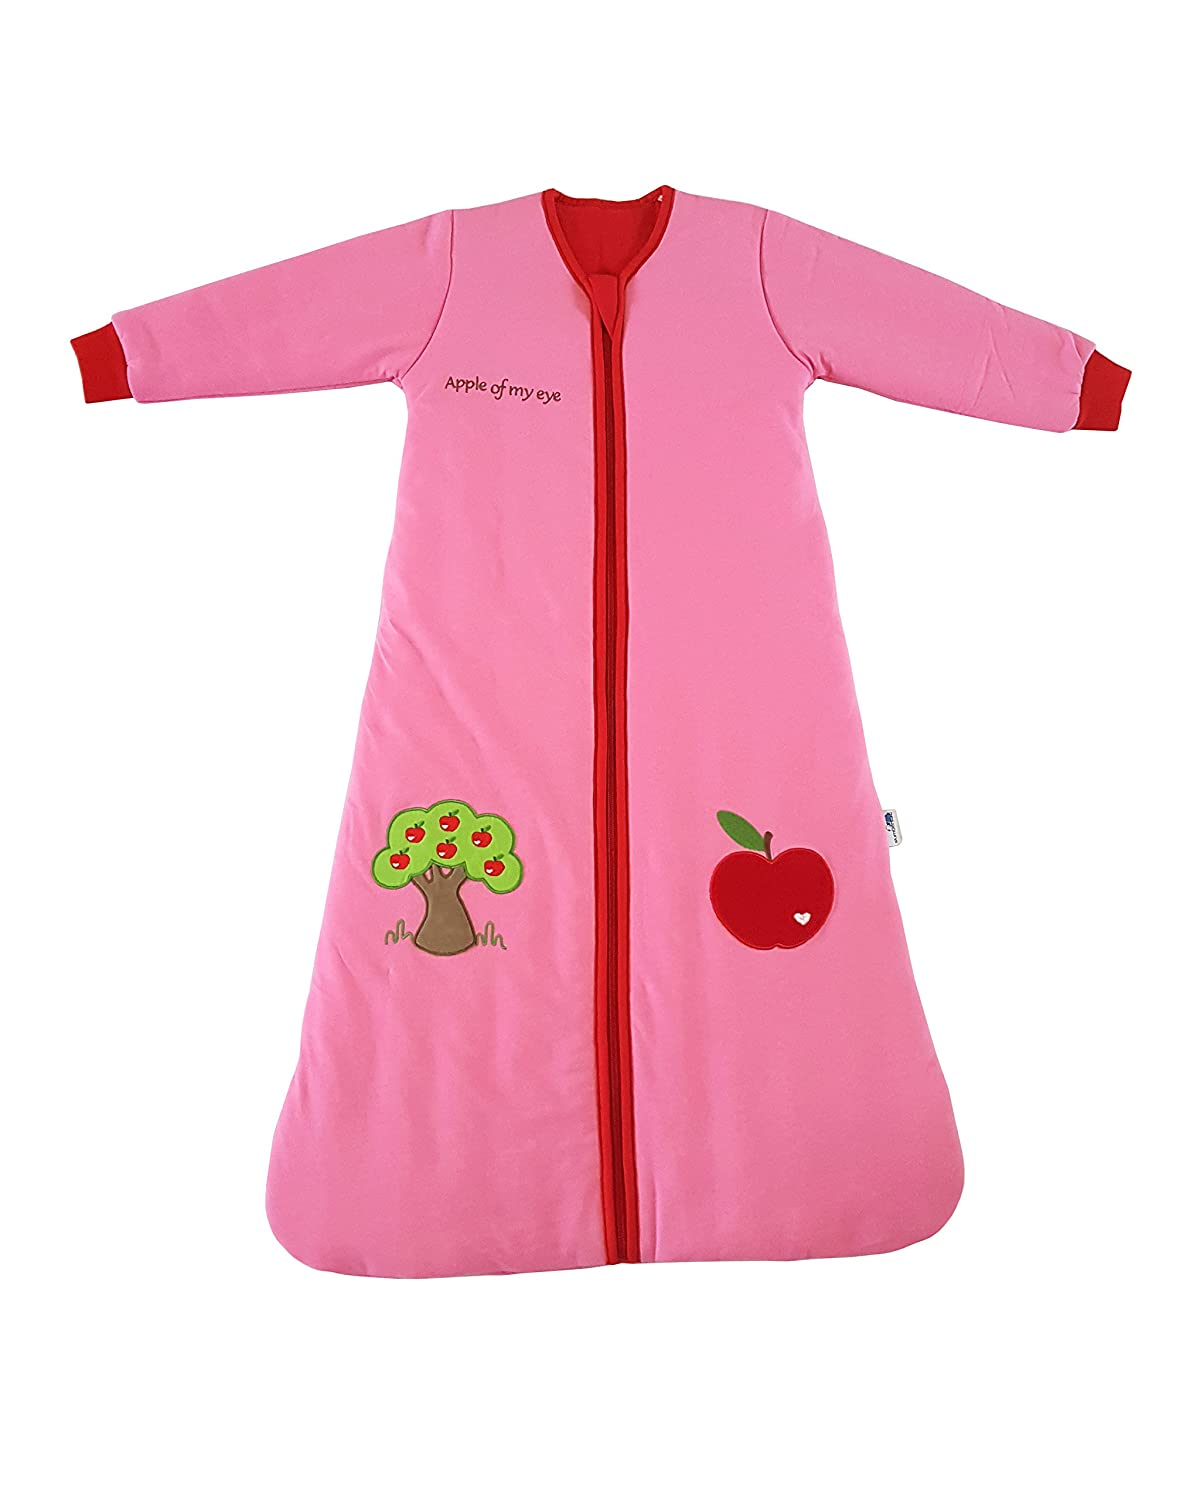 Slumbersac Sleeping Bag with Non Removable Long Sleeves 3.5 Tog-Red Apple - 3-6 years/130cm